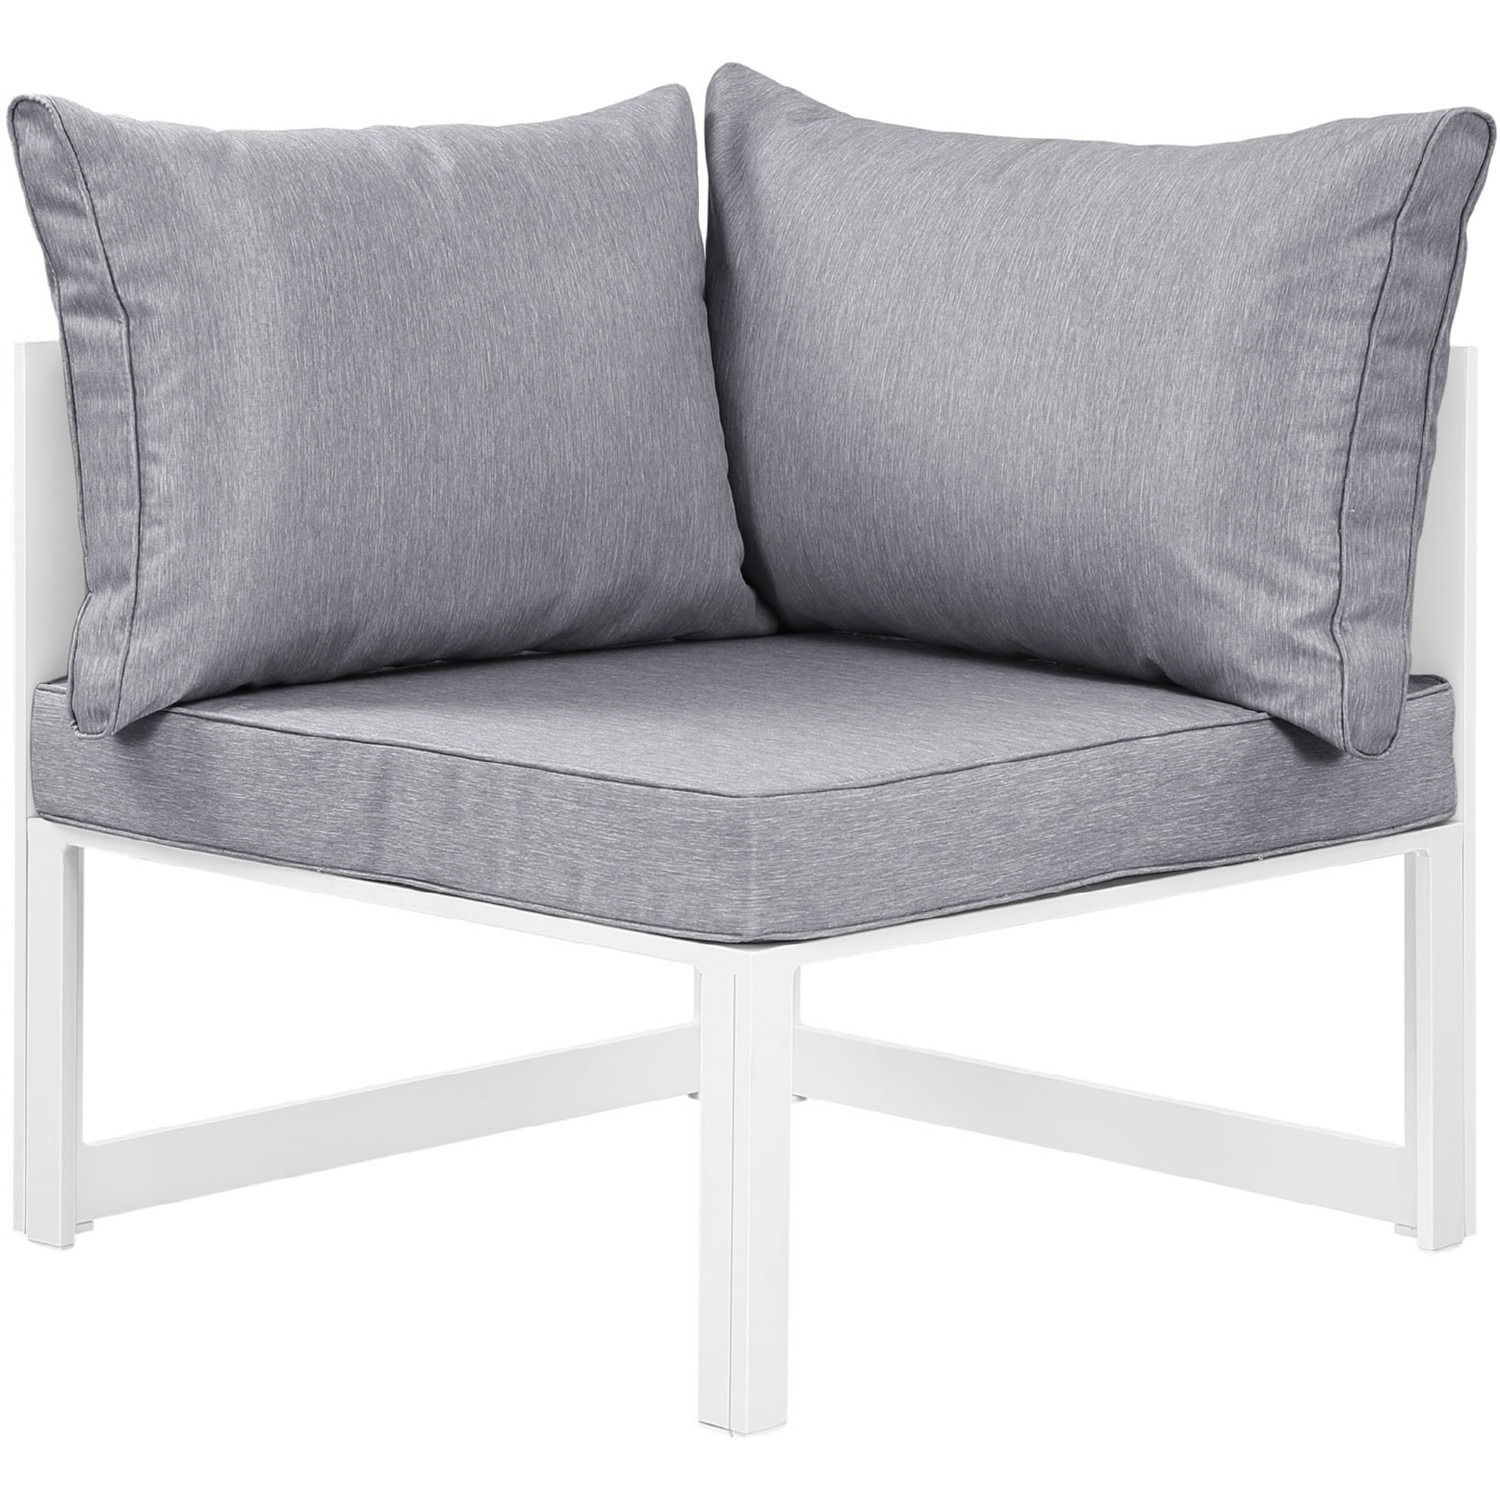 5-Piece Outdoor Sectional In Gray & White Finish - image-3